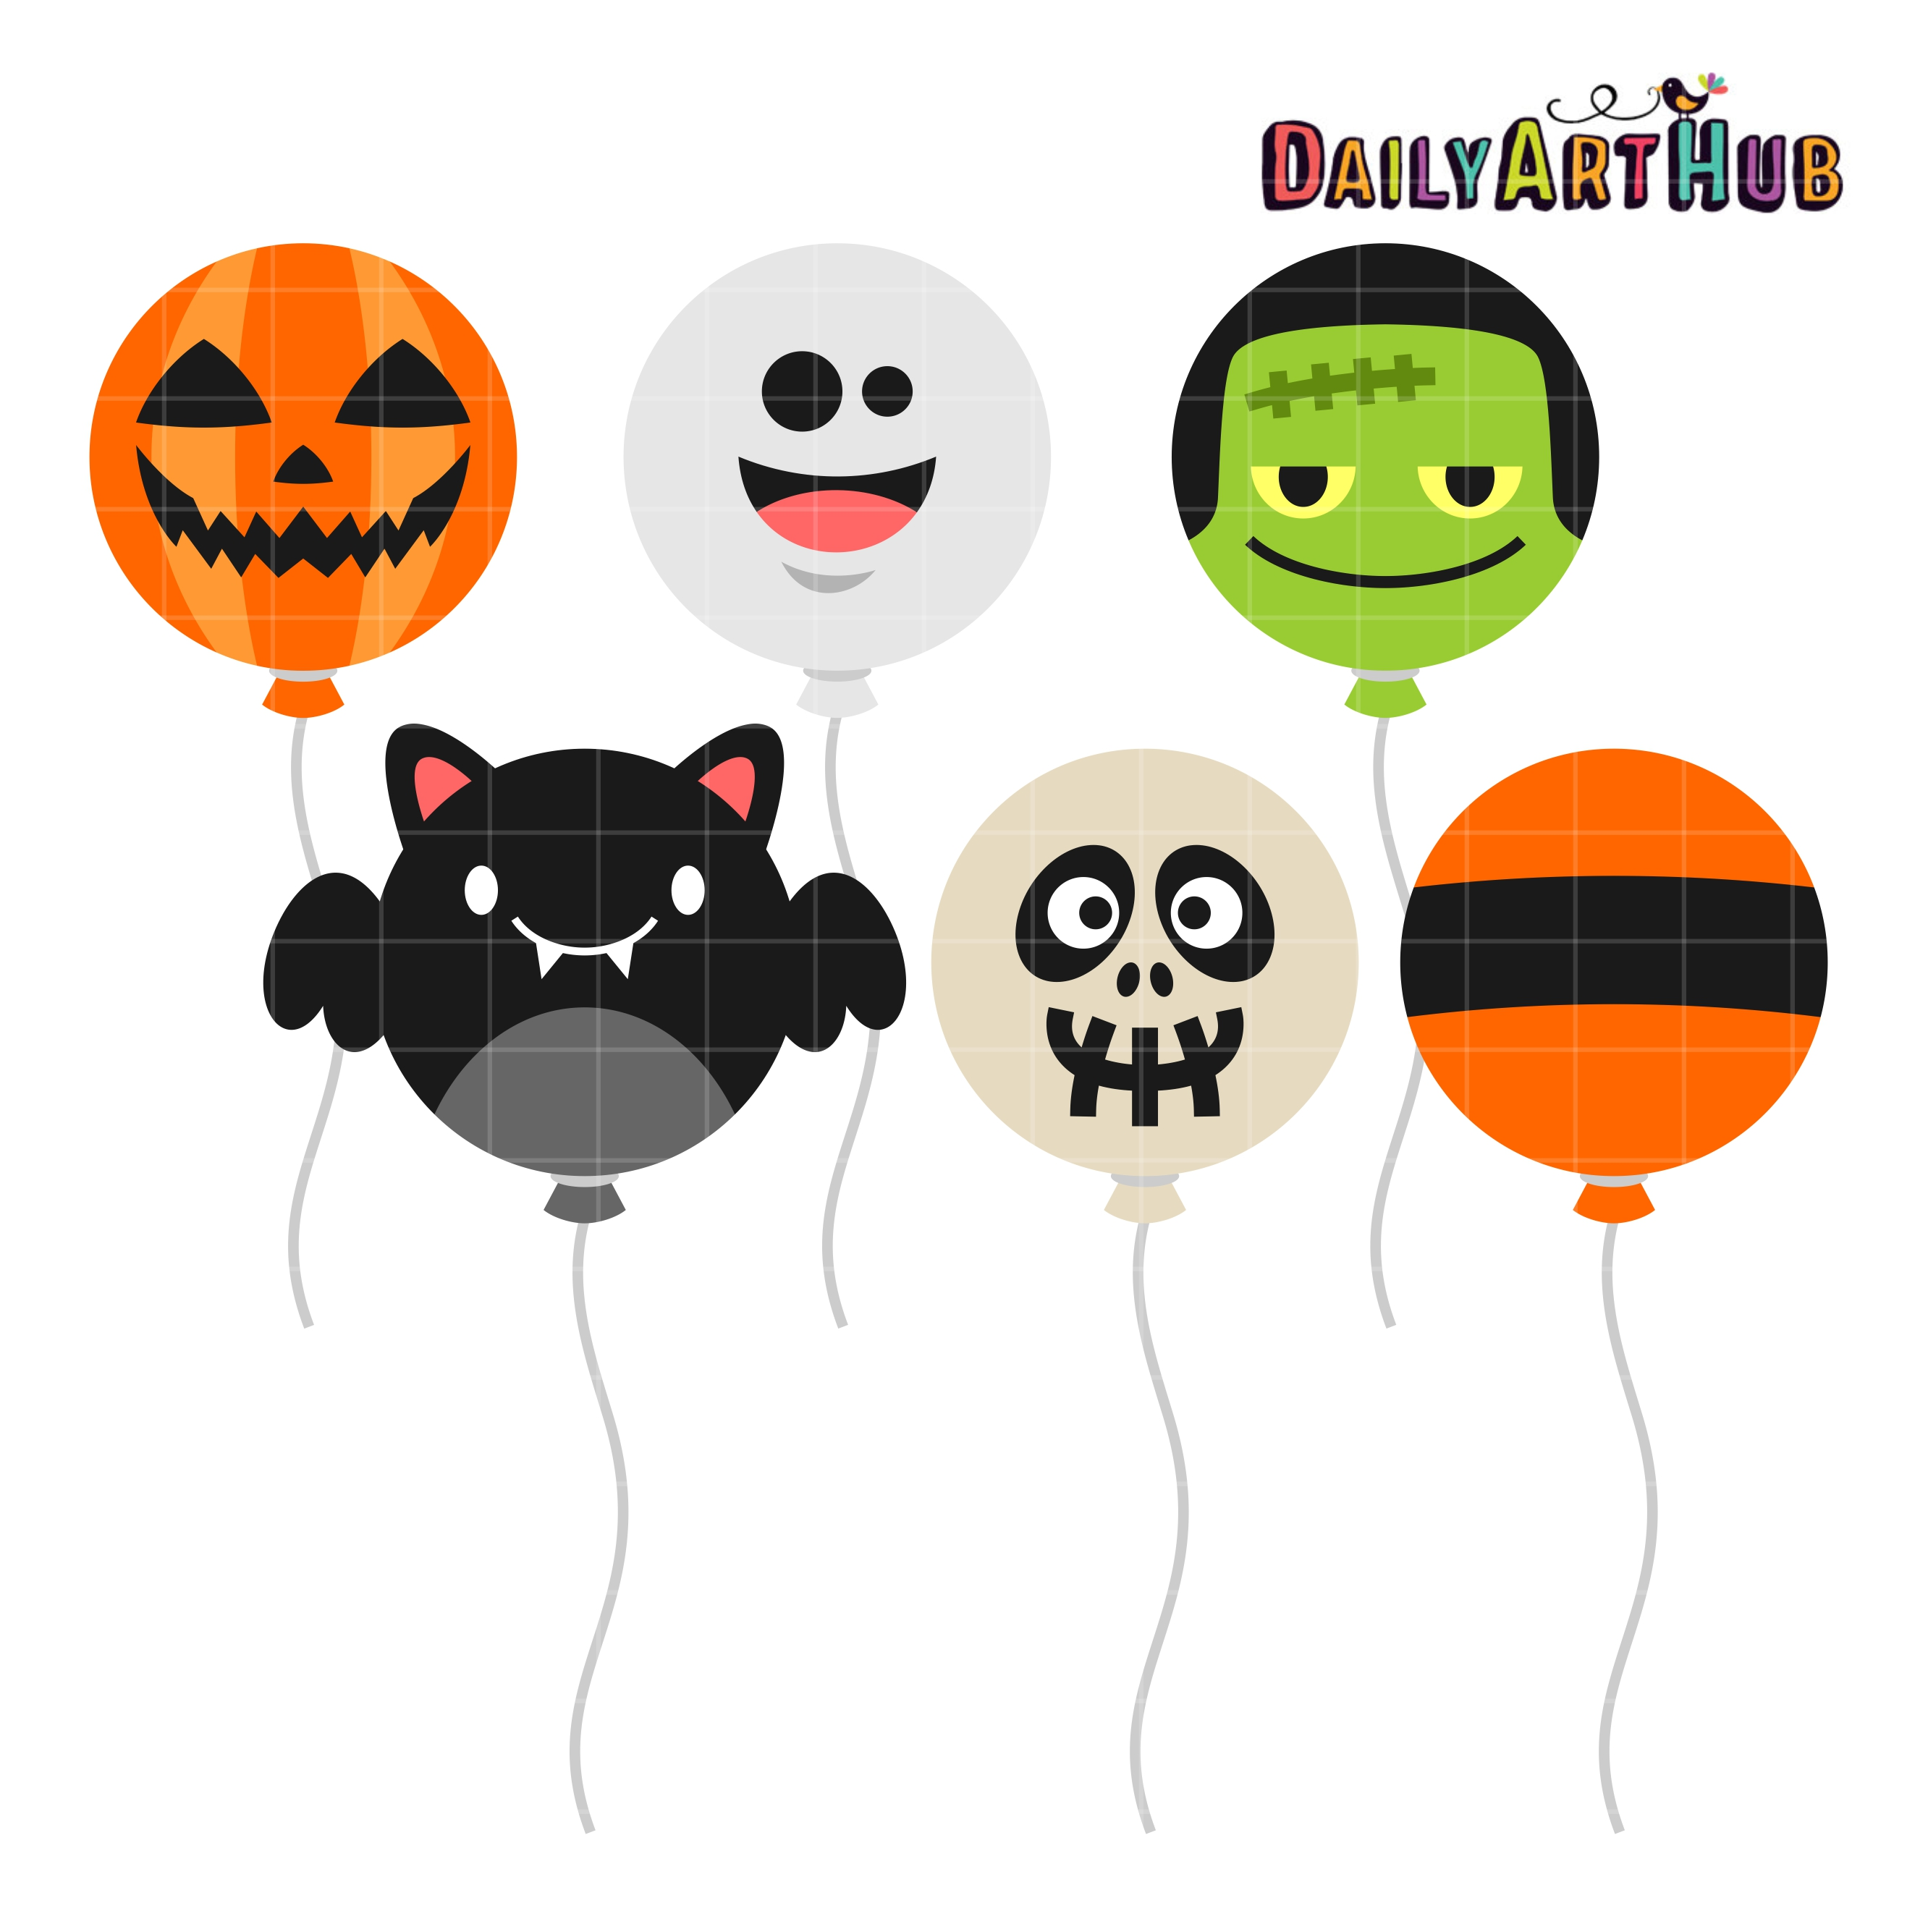 Halloween Balloons Clip Art Set | Daily Art Hub